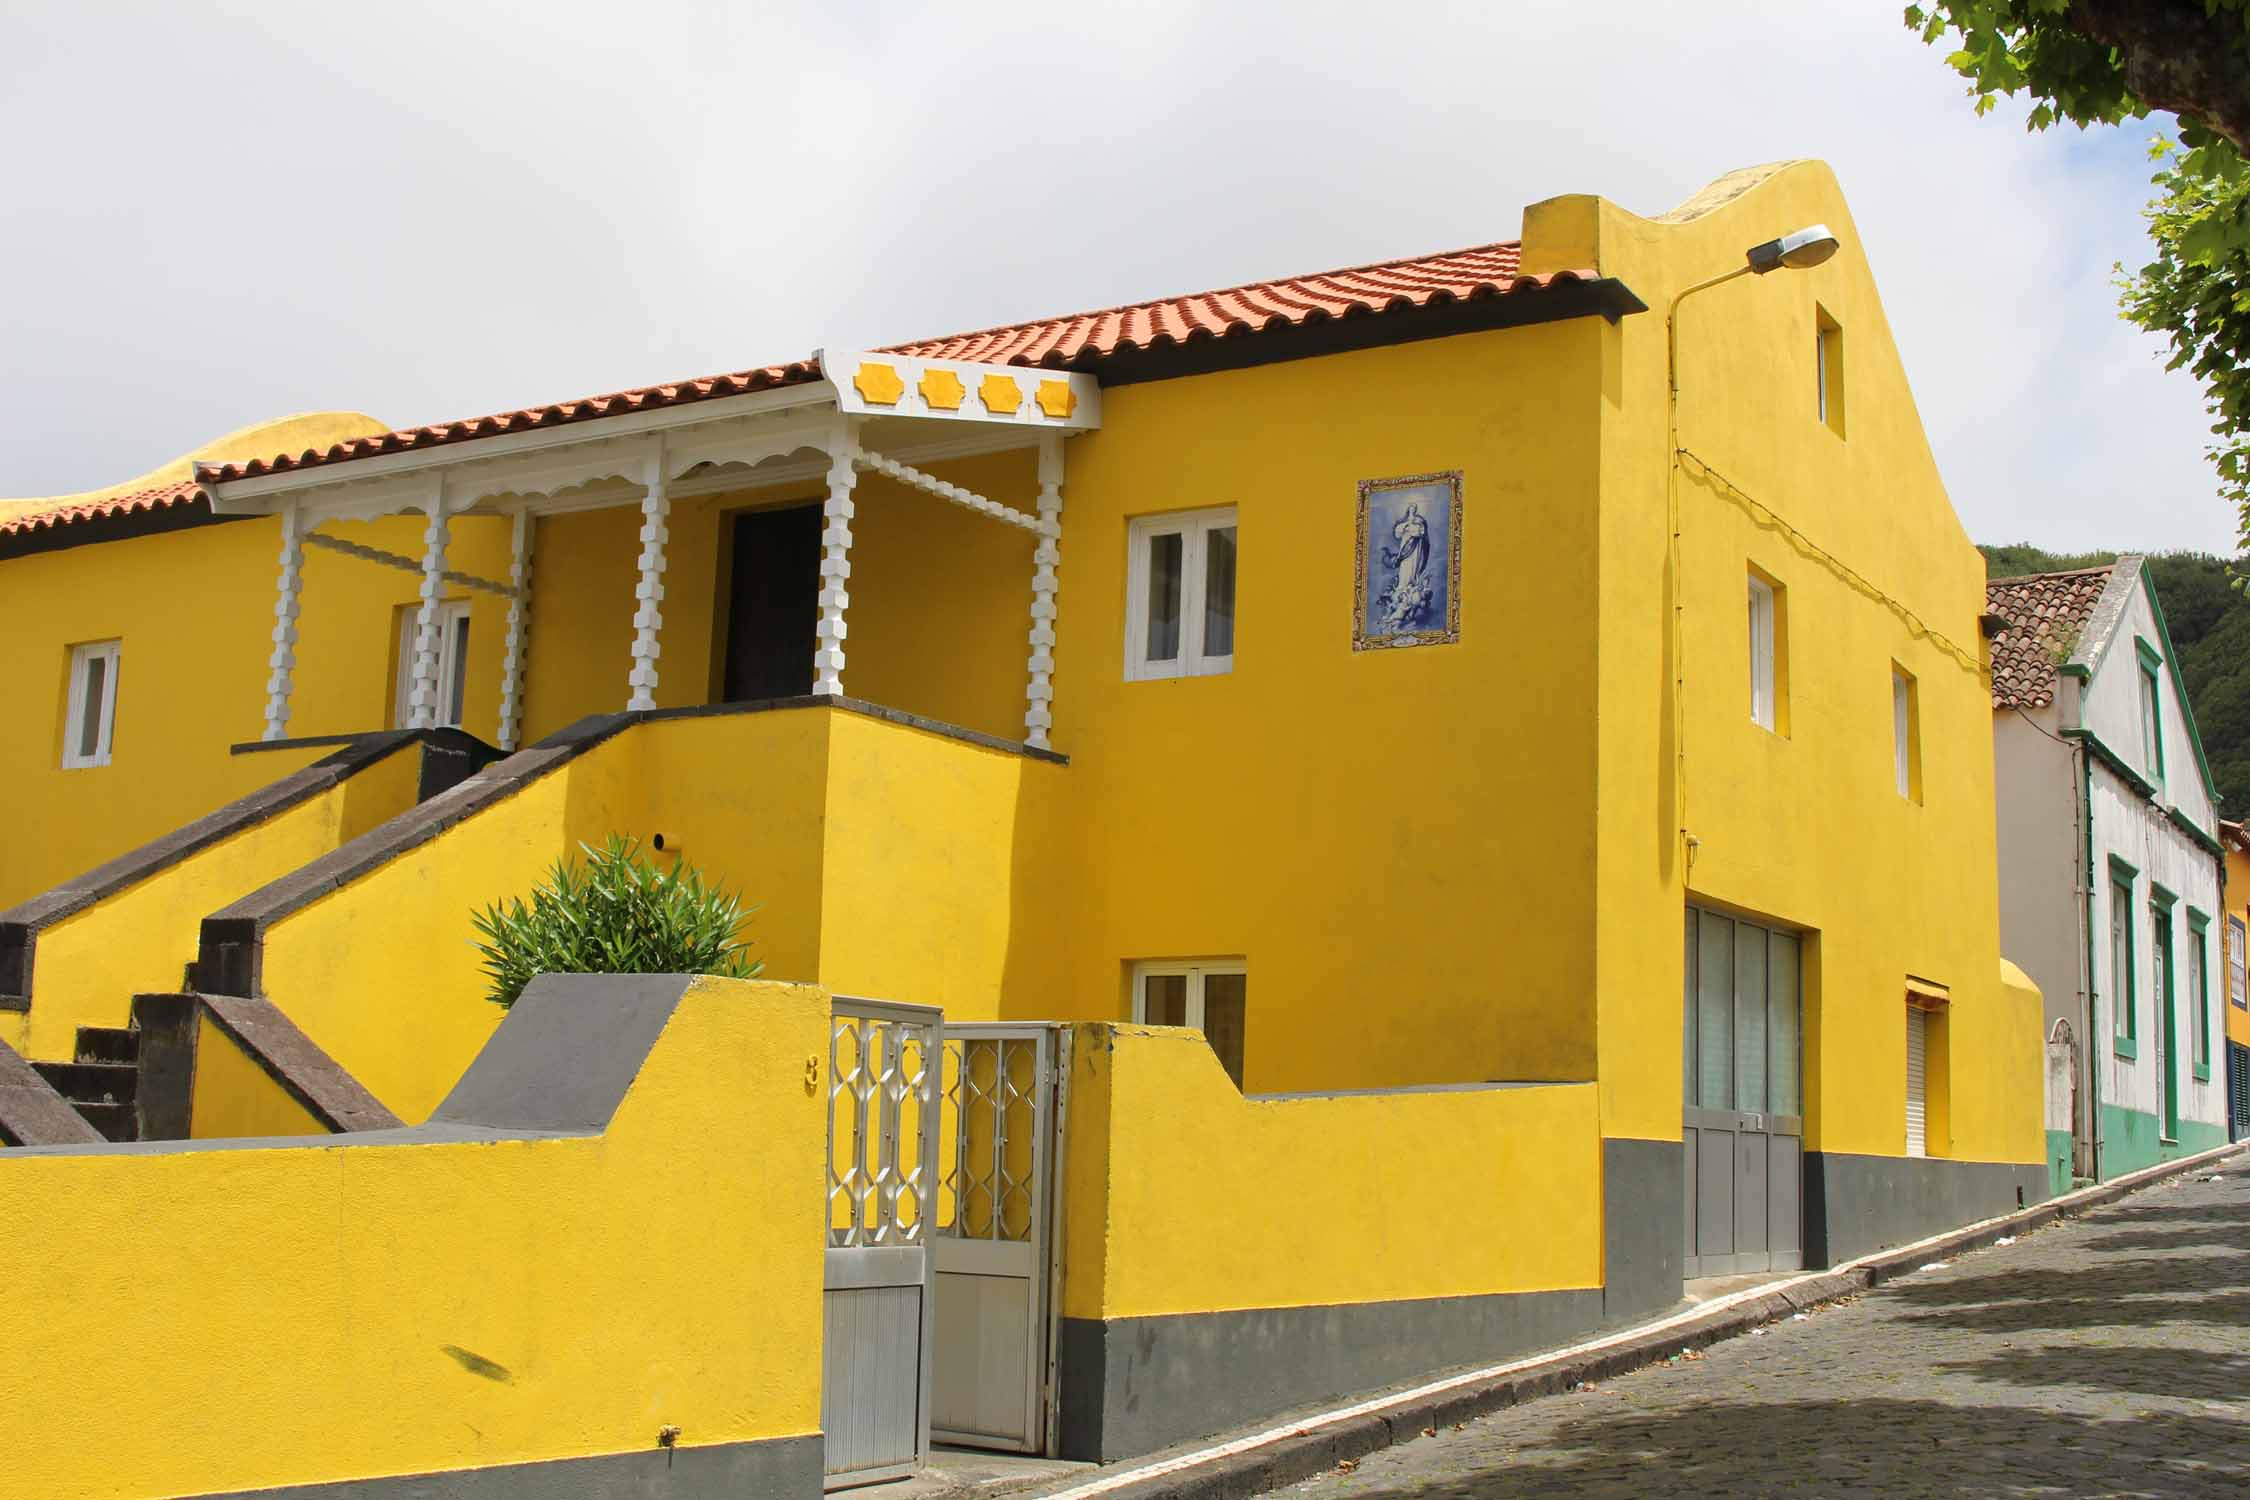 A typical yellow house in Mosteiros, São Miguel island, Azores